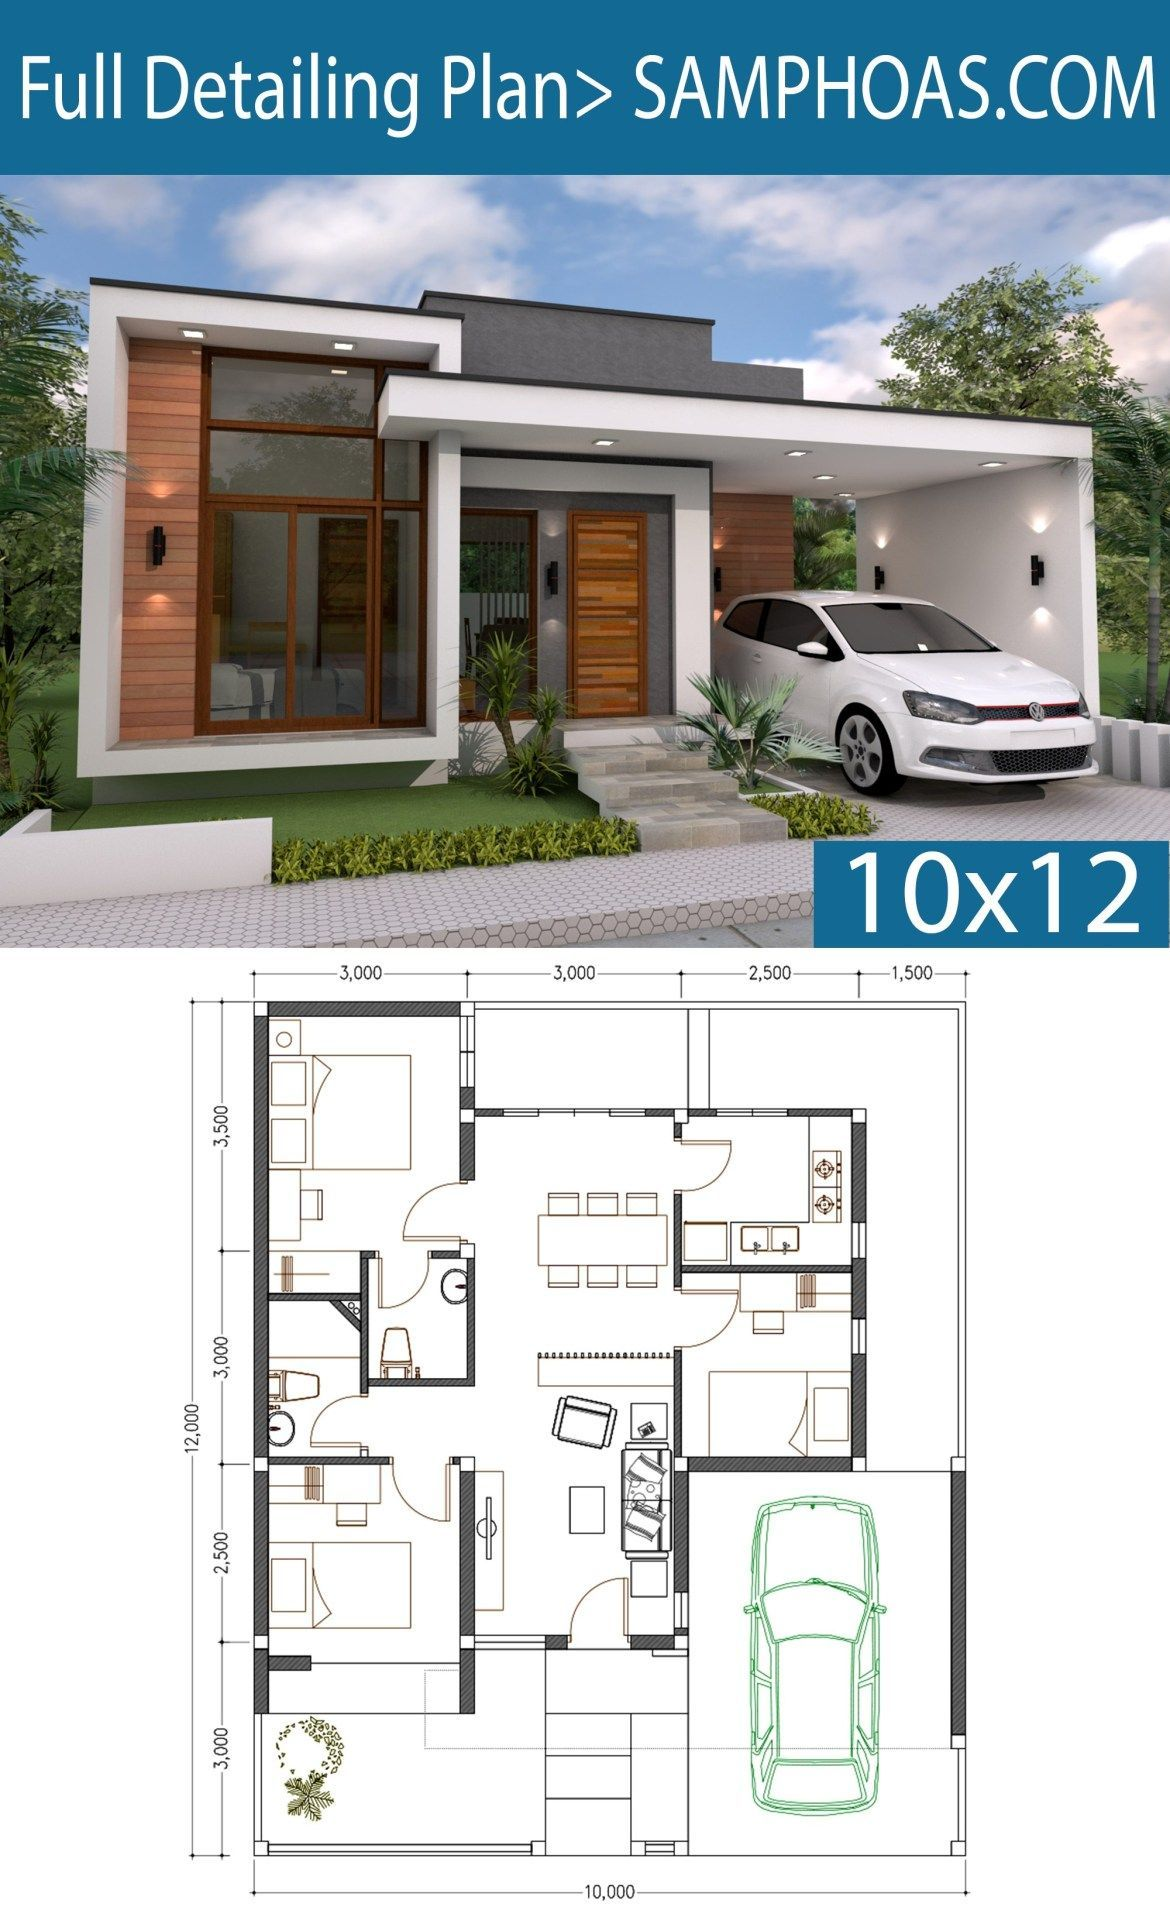 11 Smart Concepts Of How To Upgrade Modern 3 Bedroom House Plans In 2021 Modern Style House Plans Bungalow House Plans Modern Bungalow House